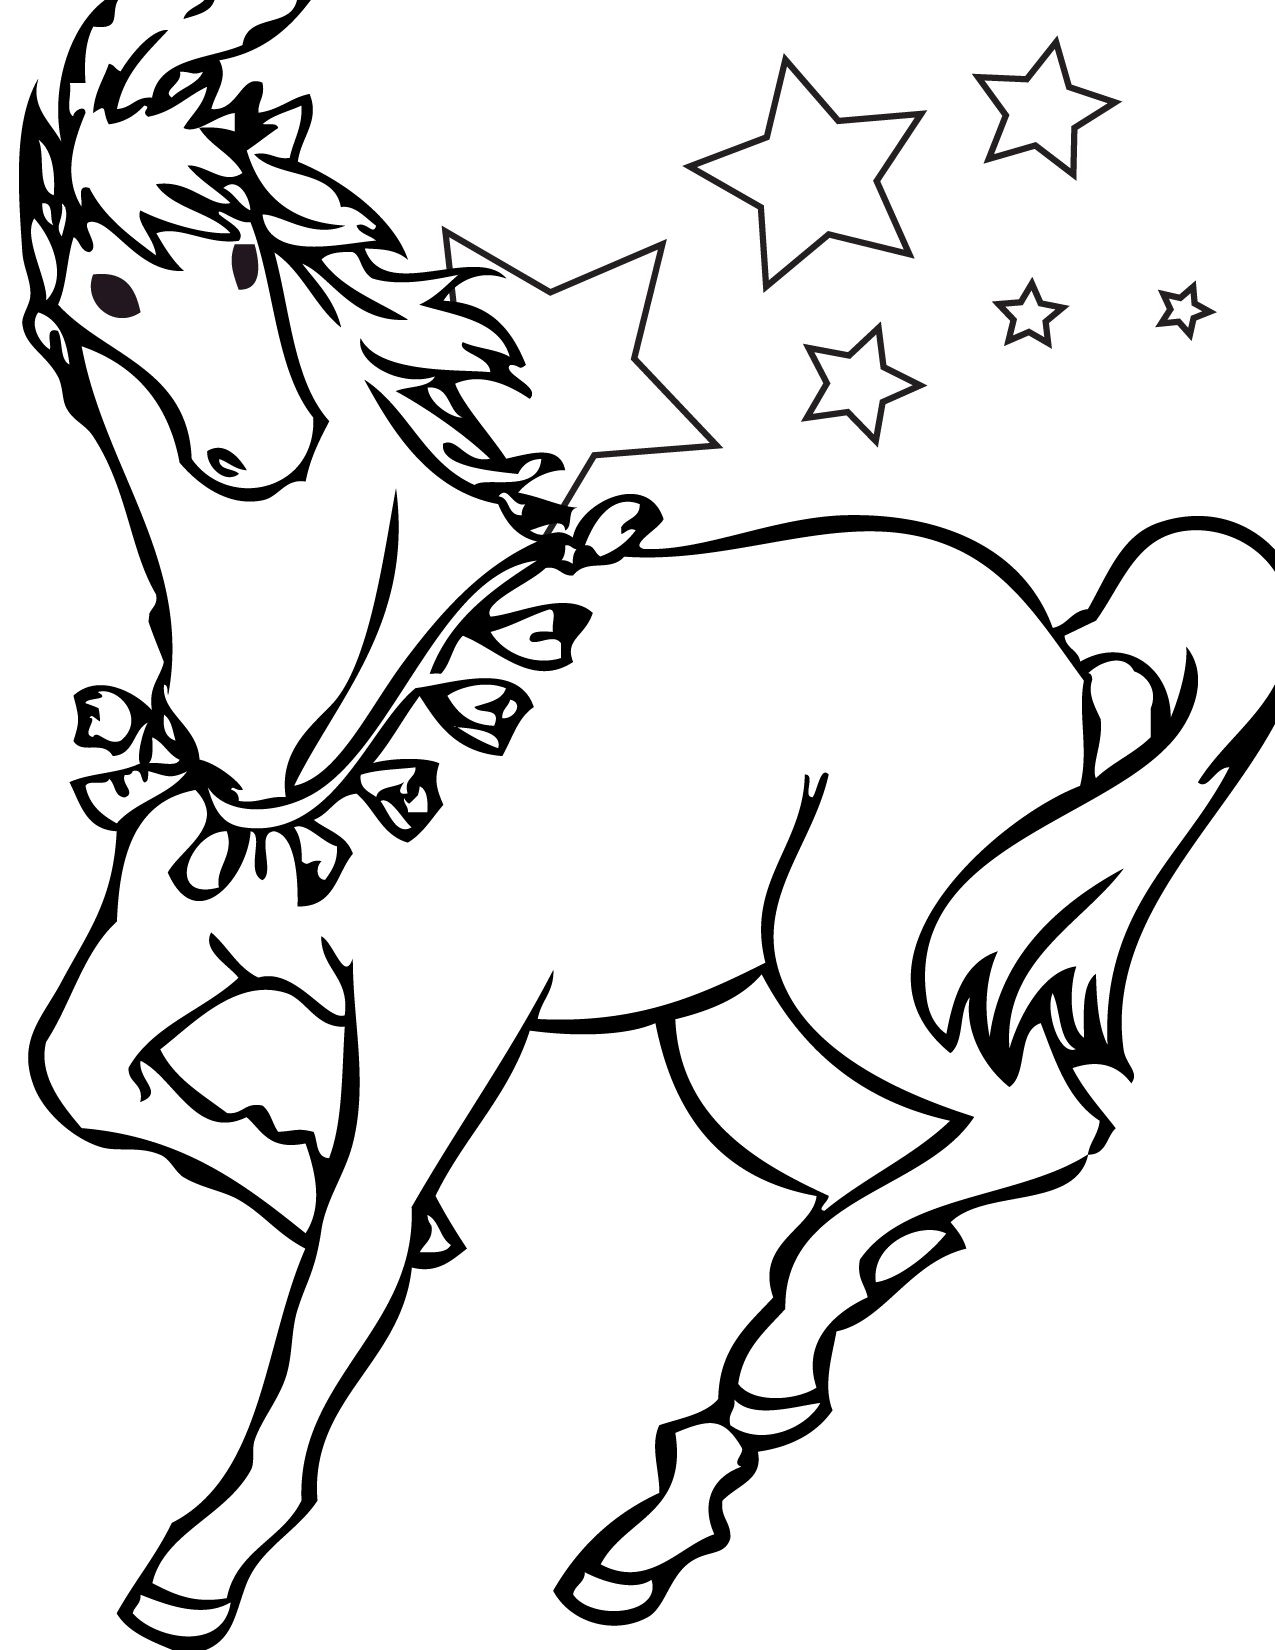 Free Printable Horse Coloring Pages For Kids   Little Ones   Horse - Free Printable Horse Coloring Pages